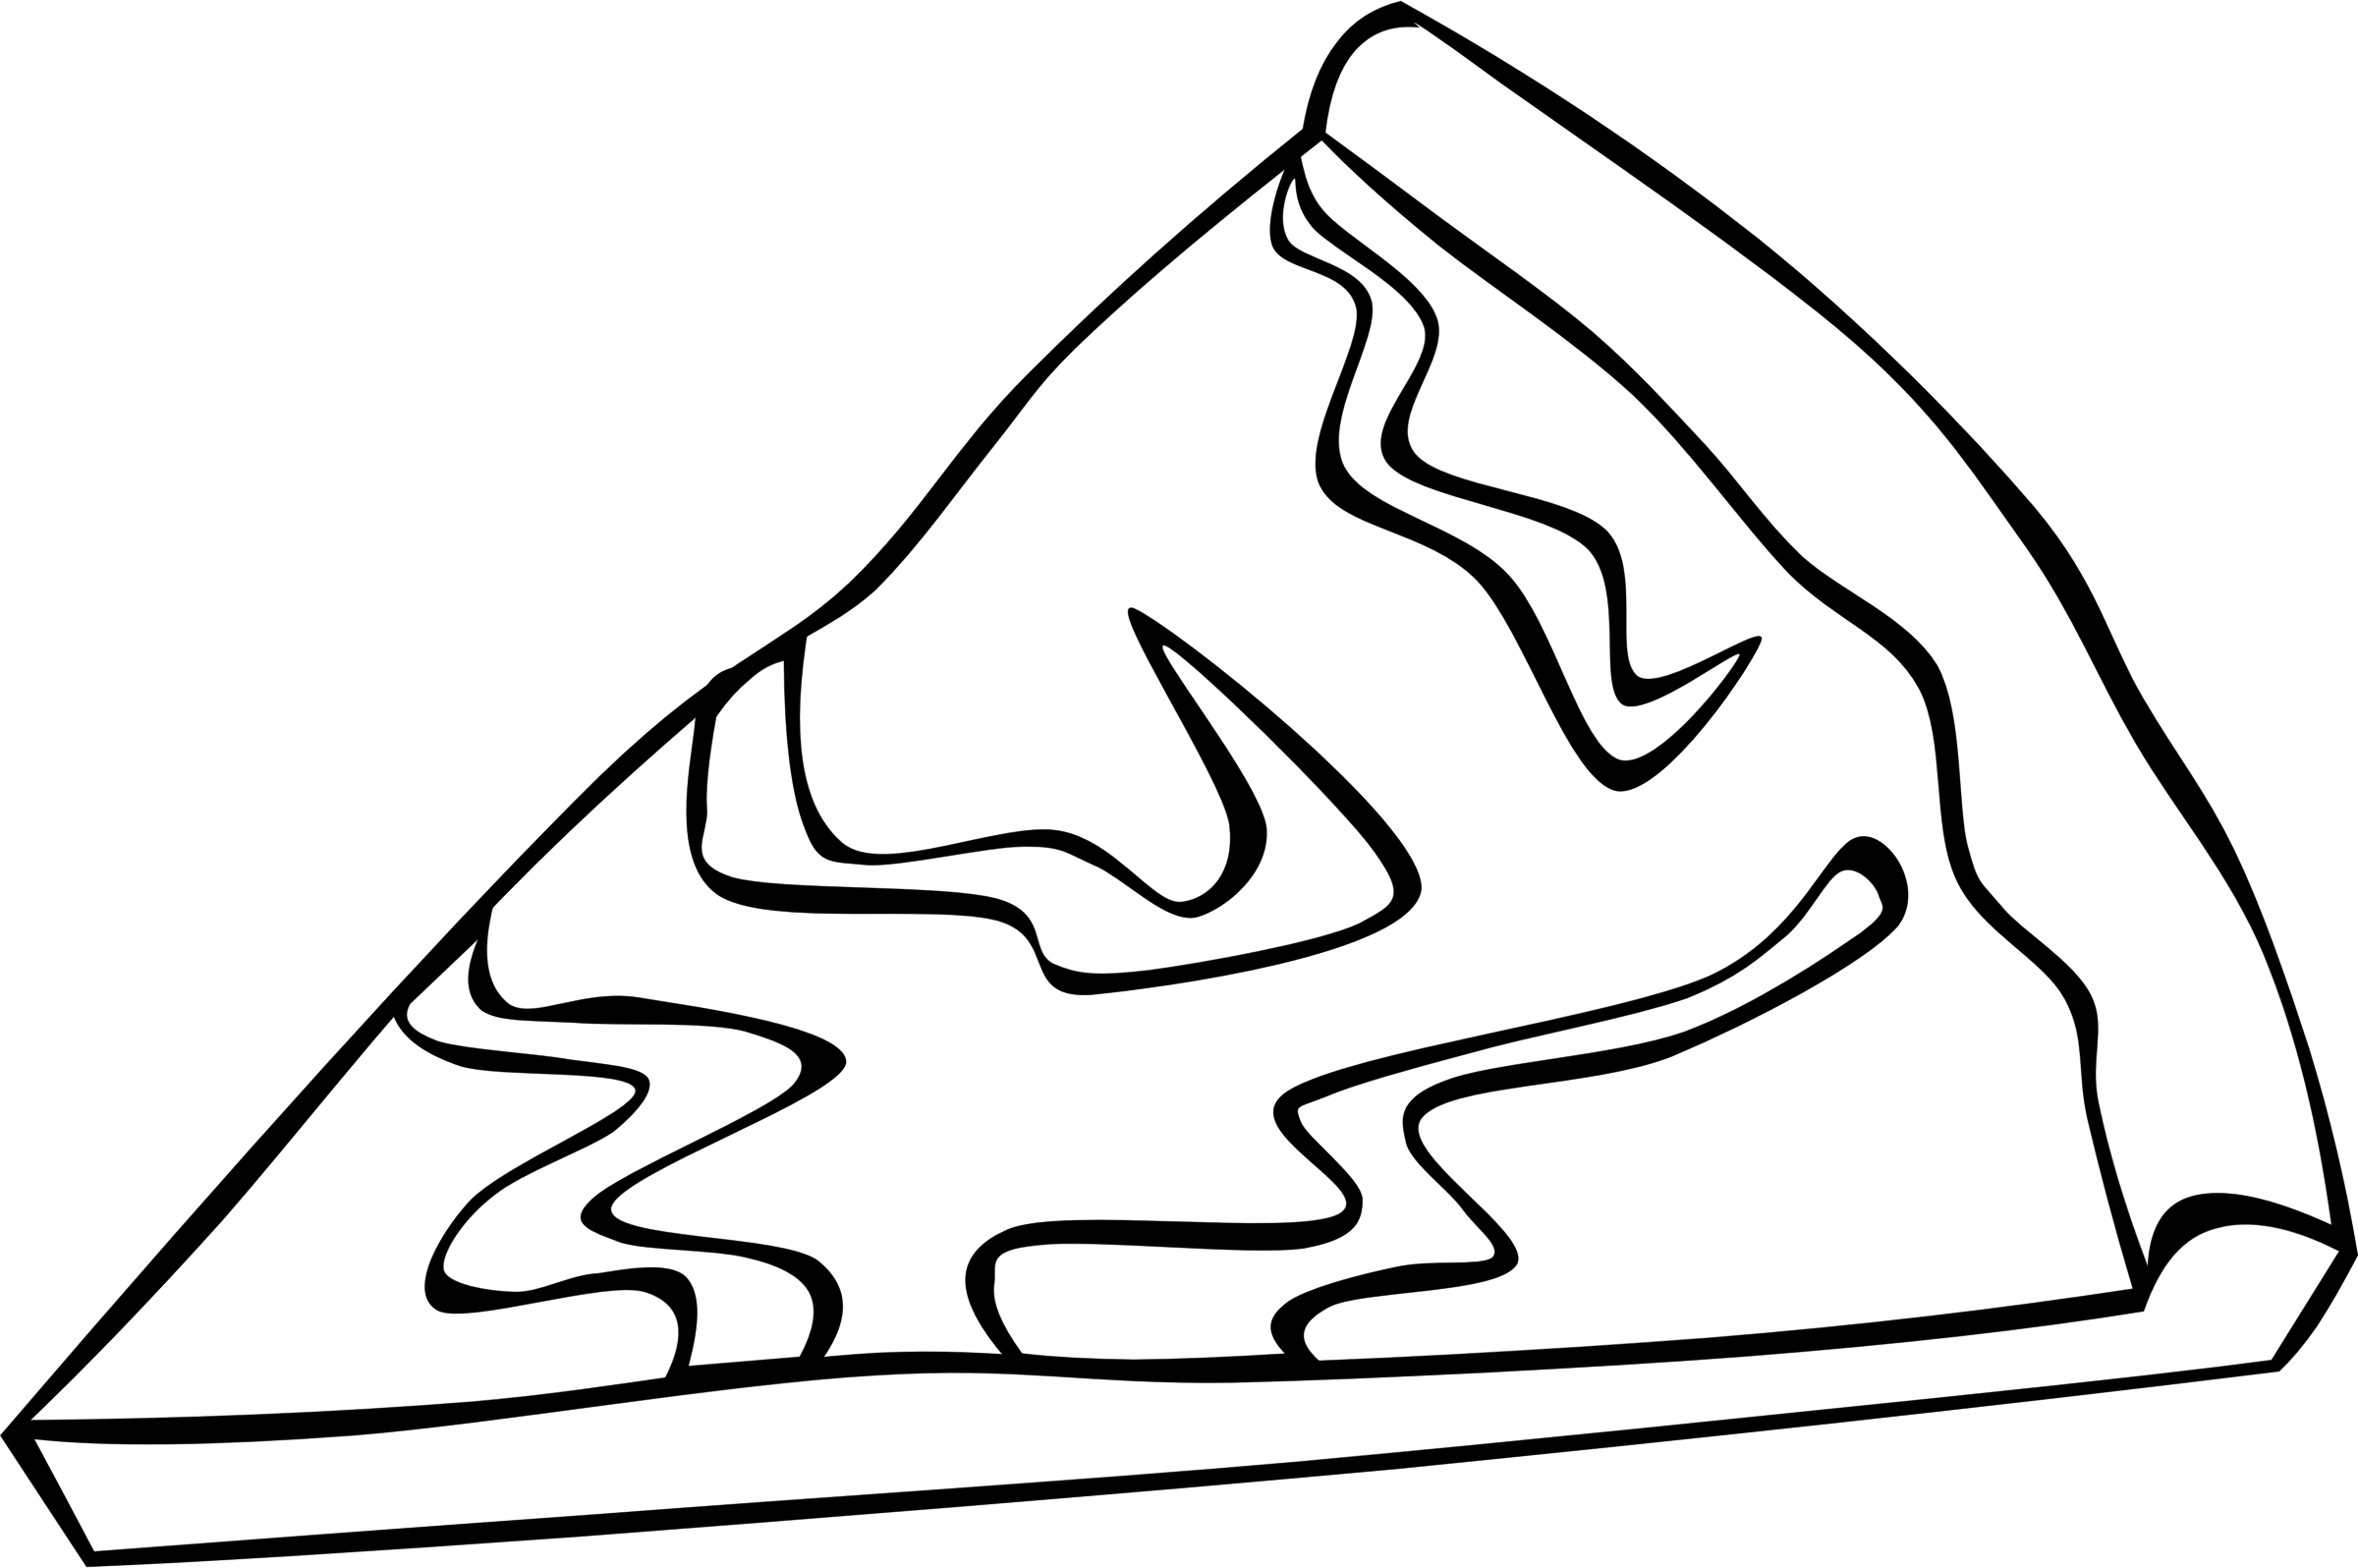 Outline clipart pizza, Outline pizza Transparent FREE for.